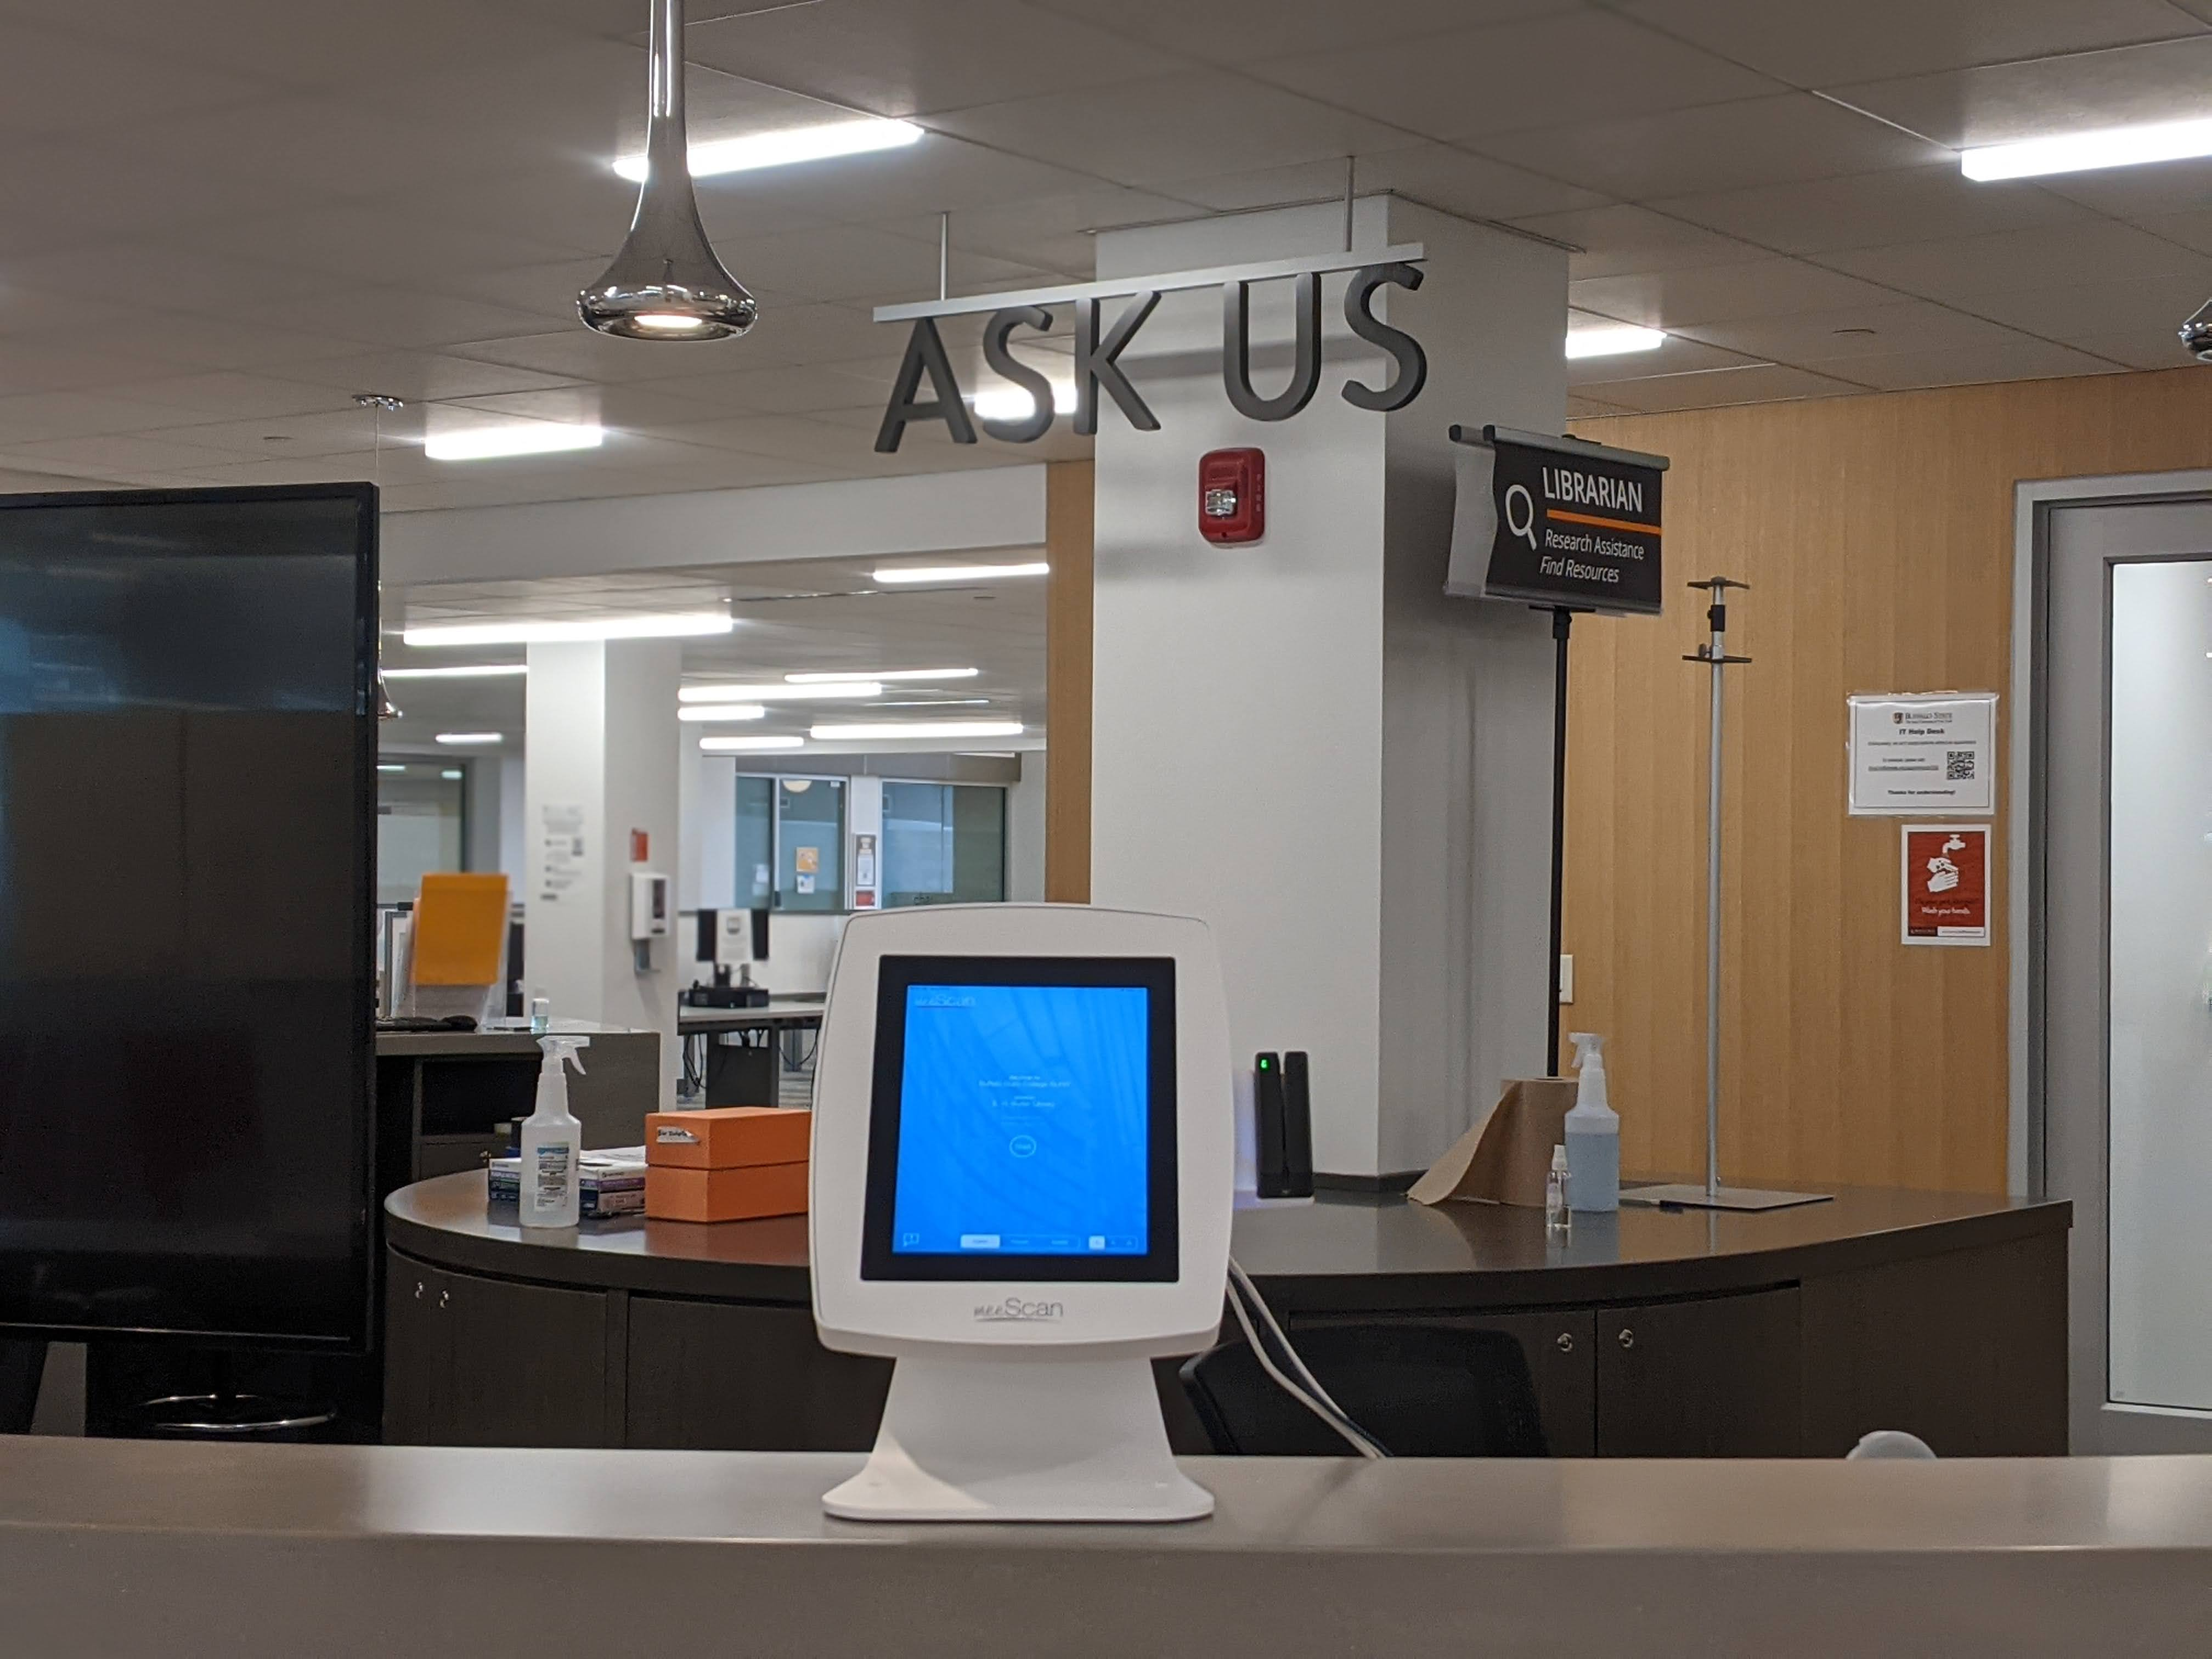 self checkout station in the library